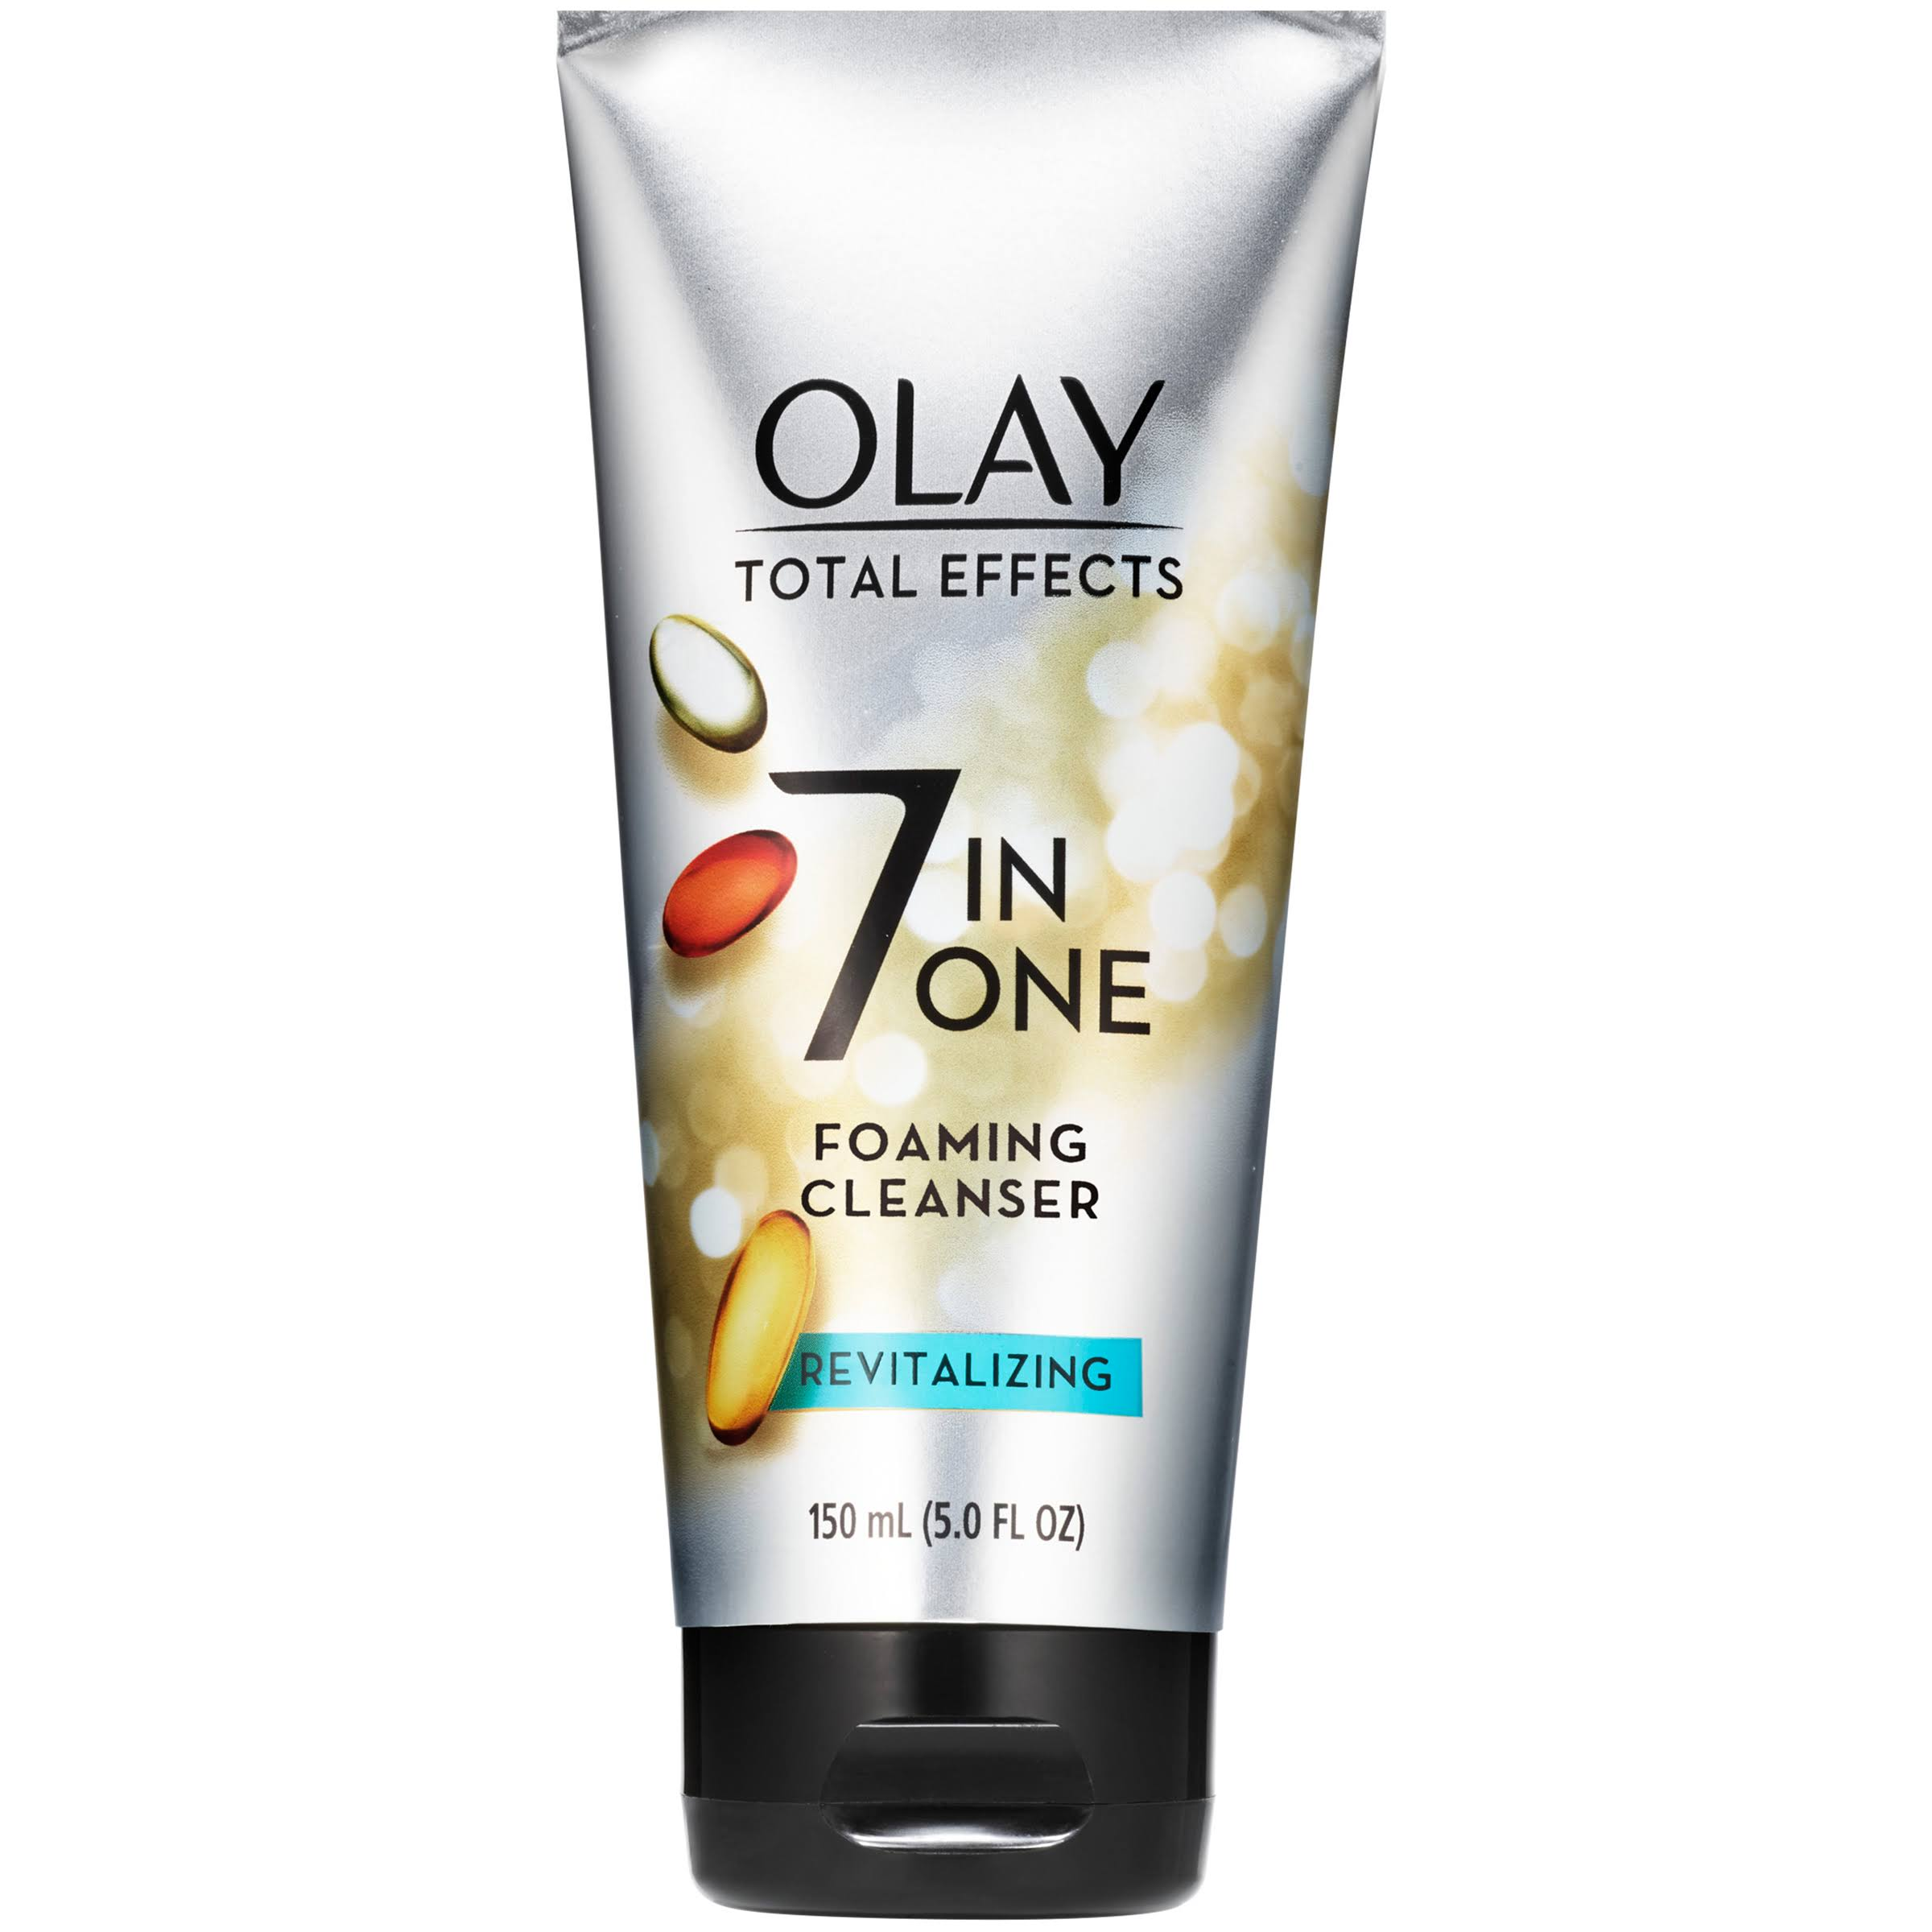 Olay Total Effects 7 in One Revitalizing Foaming Cleanser - 5oz